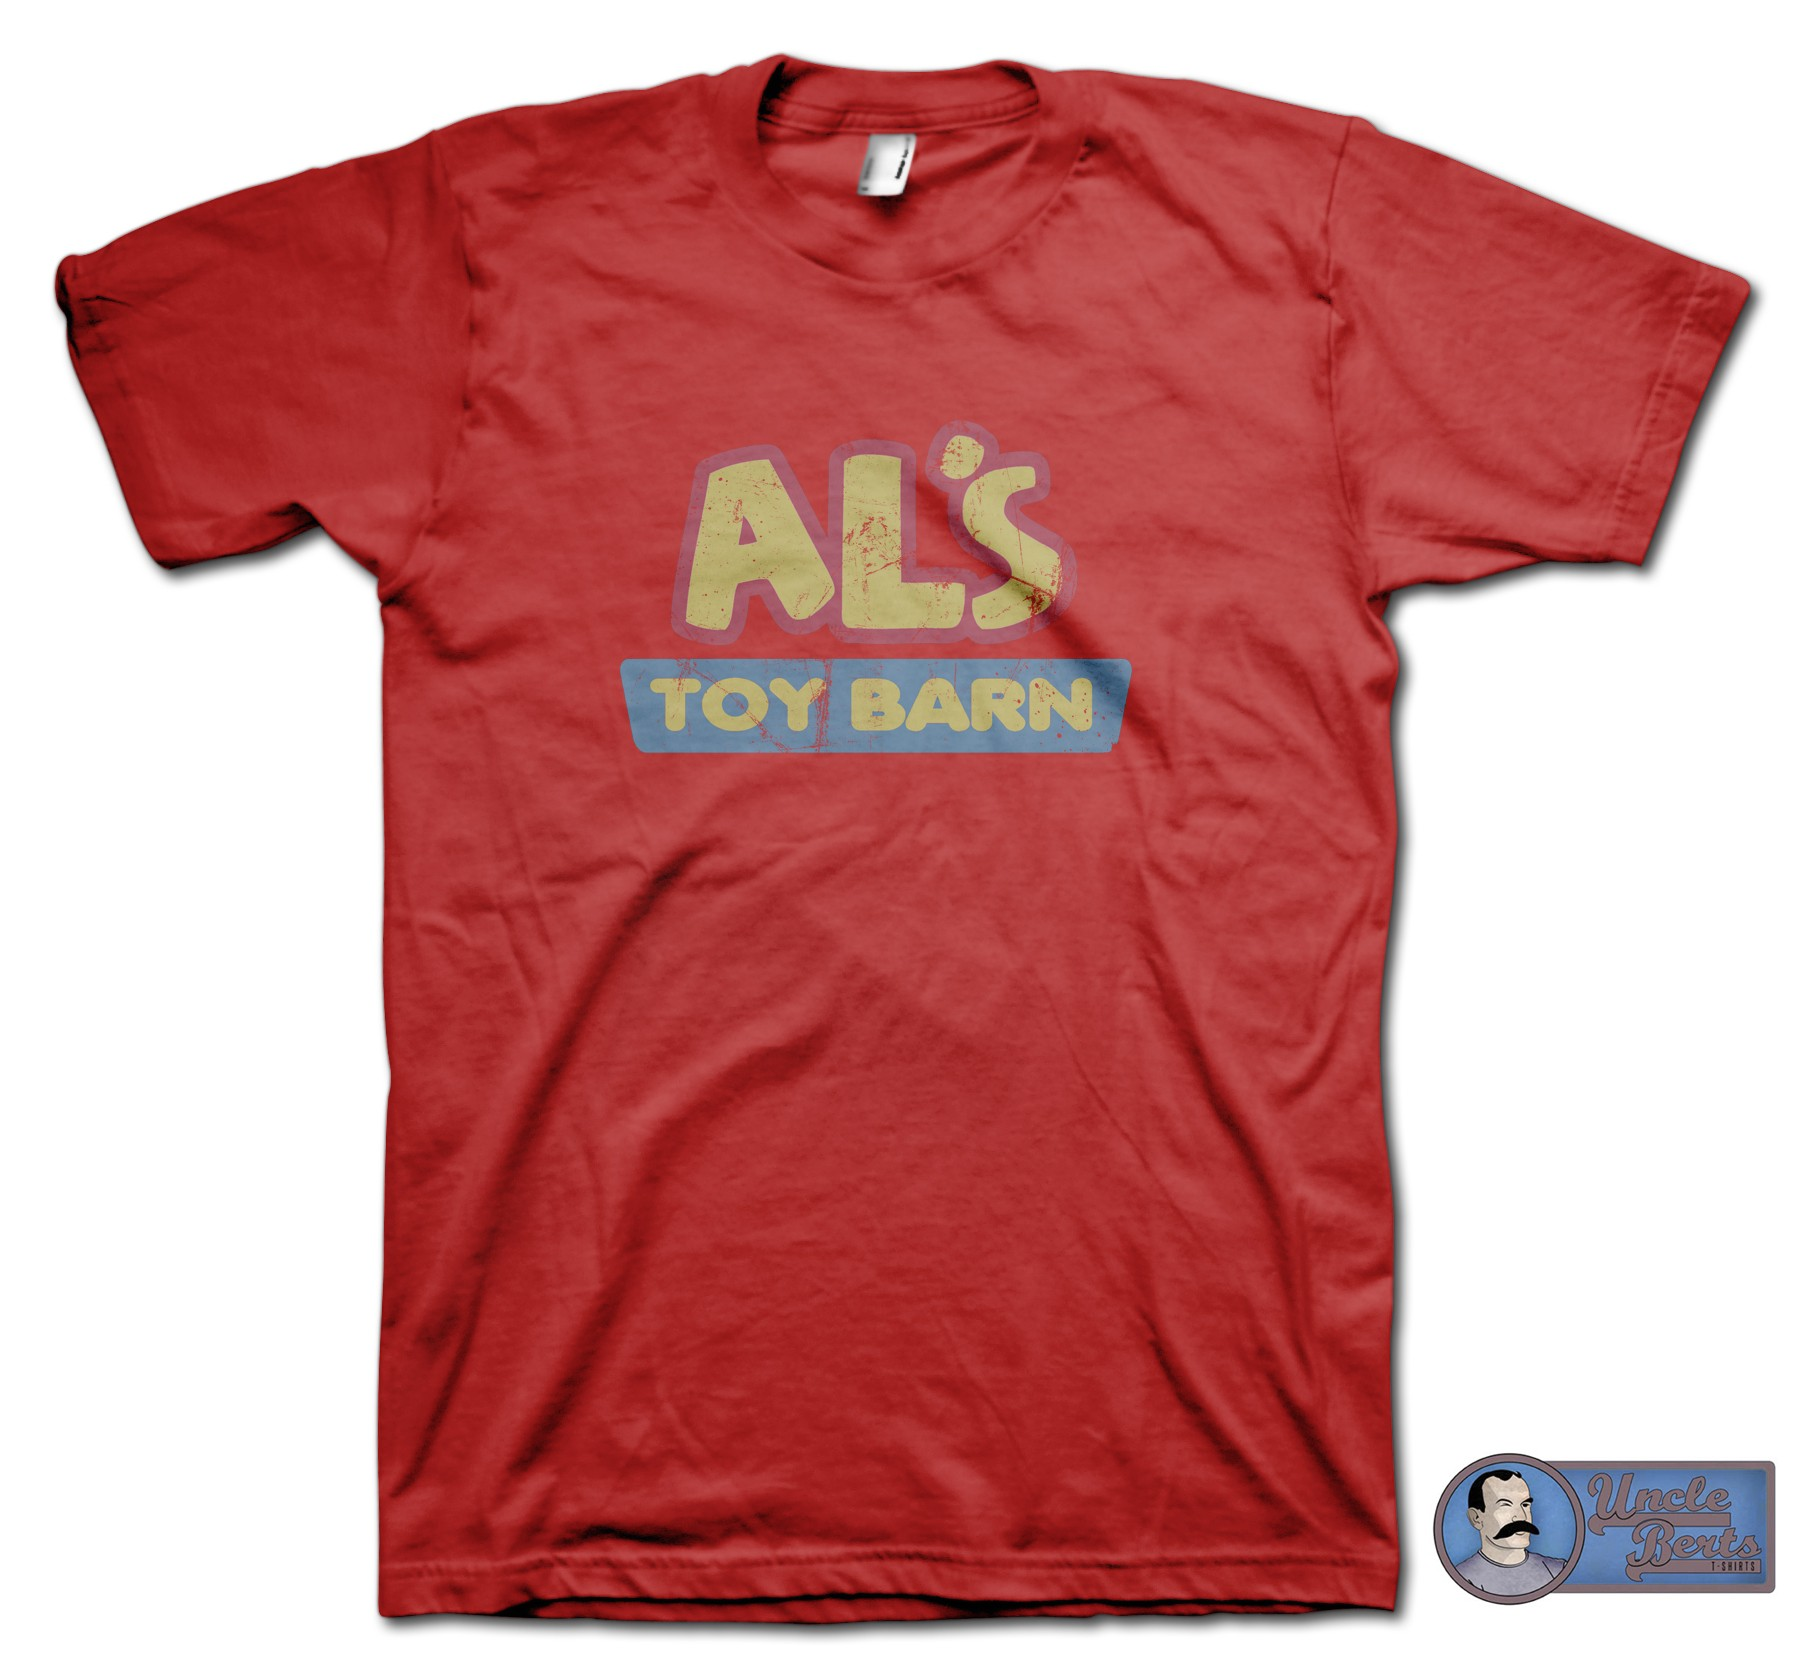 Toy Story (1999) inspired Al's Toy Barn T-Shirt